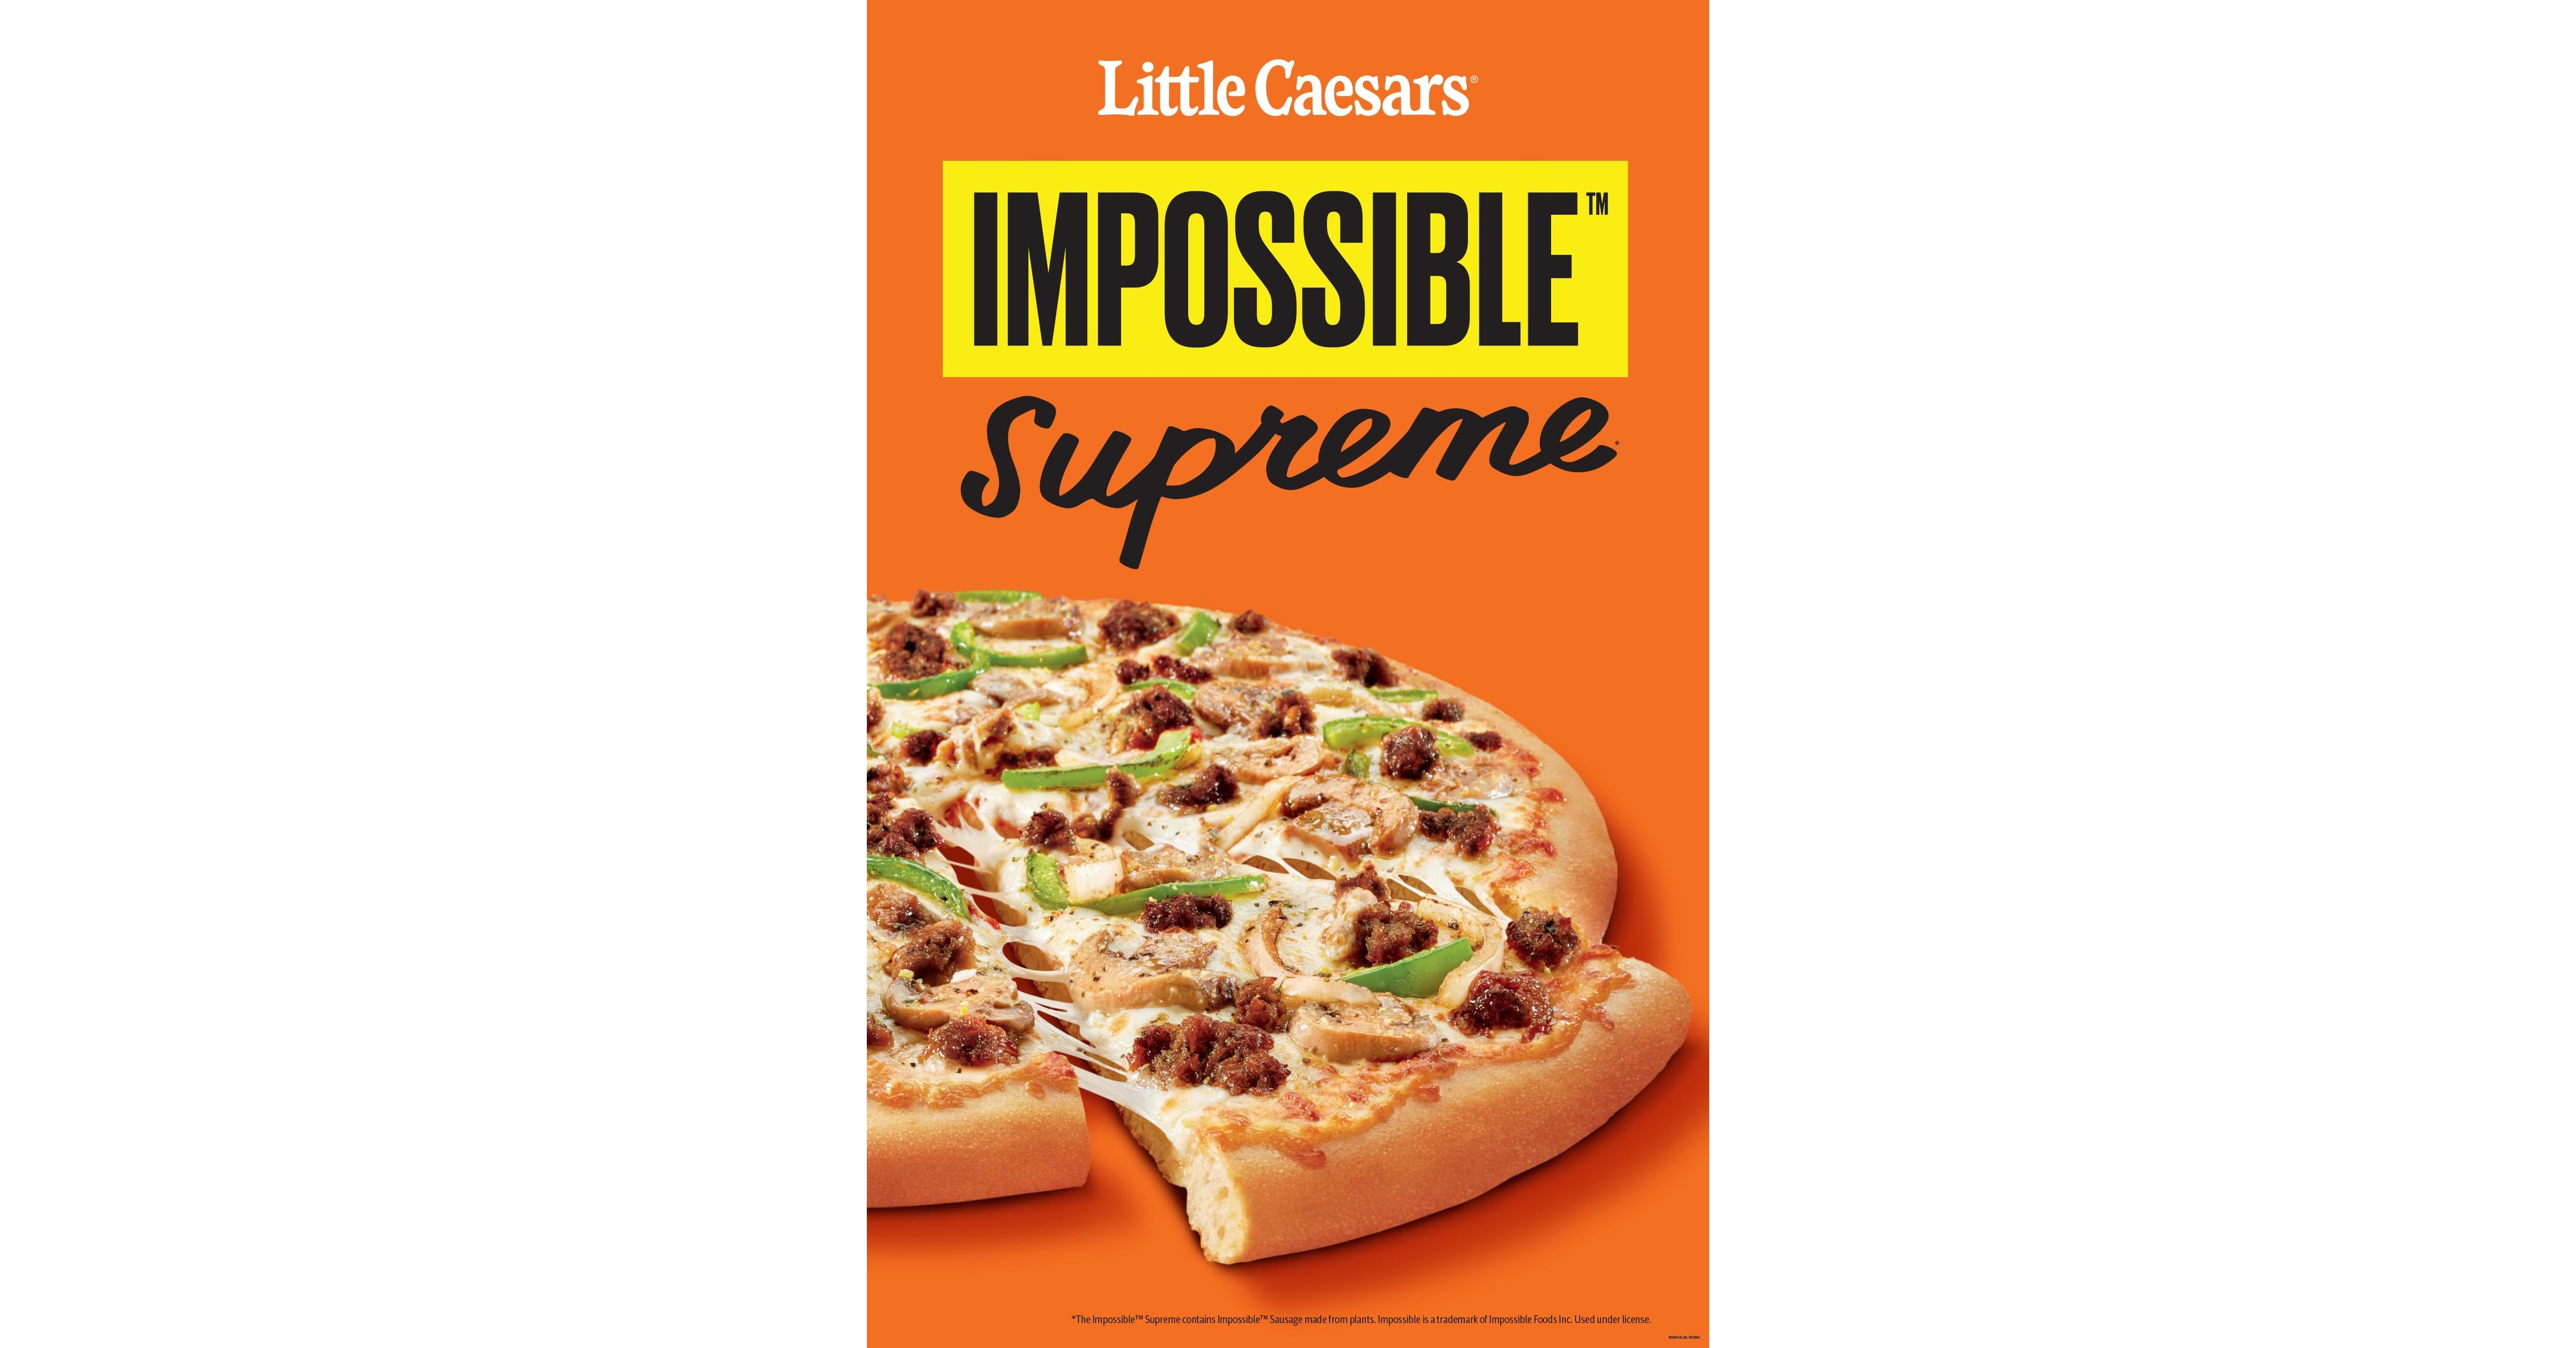 Little Caesars And Impossible Foods Team Up For Impossible Supreme Pizza